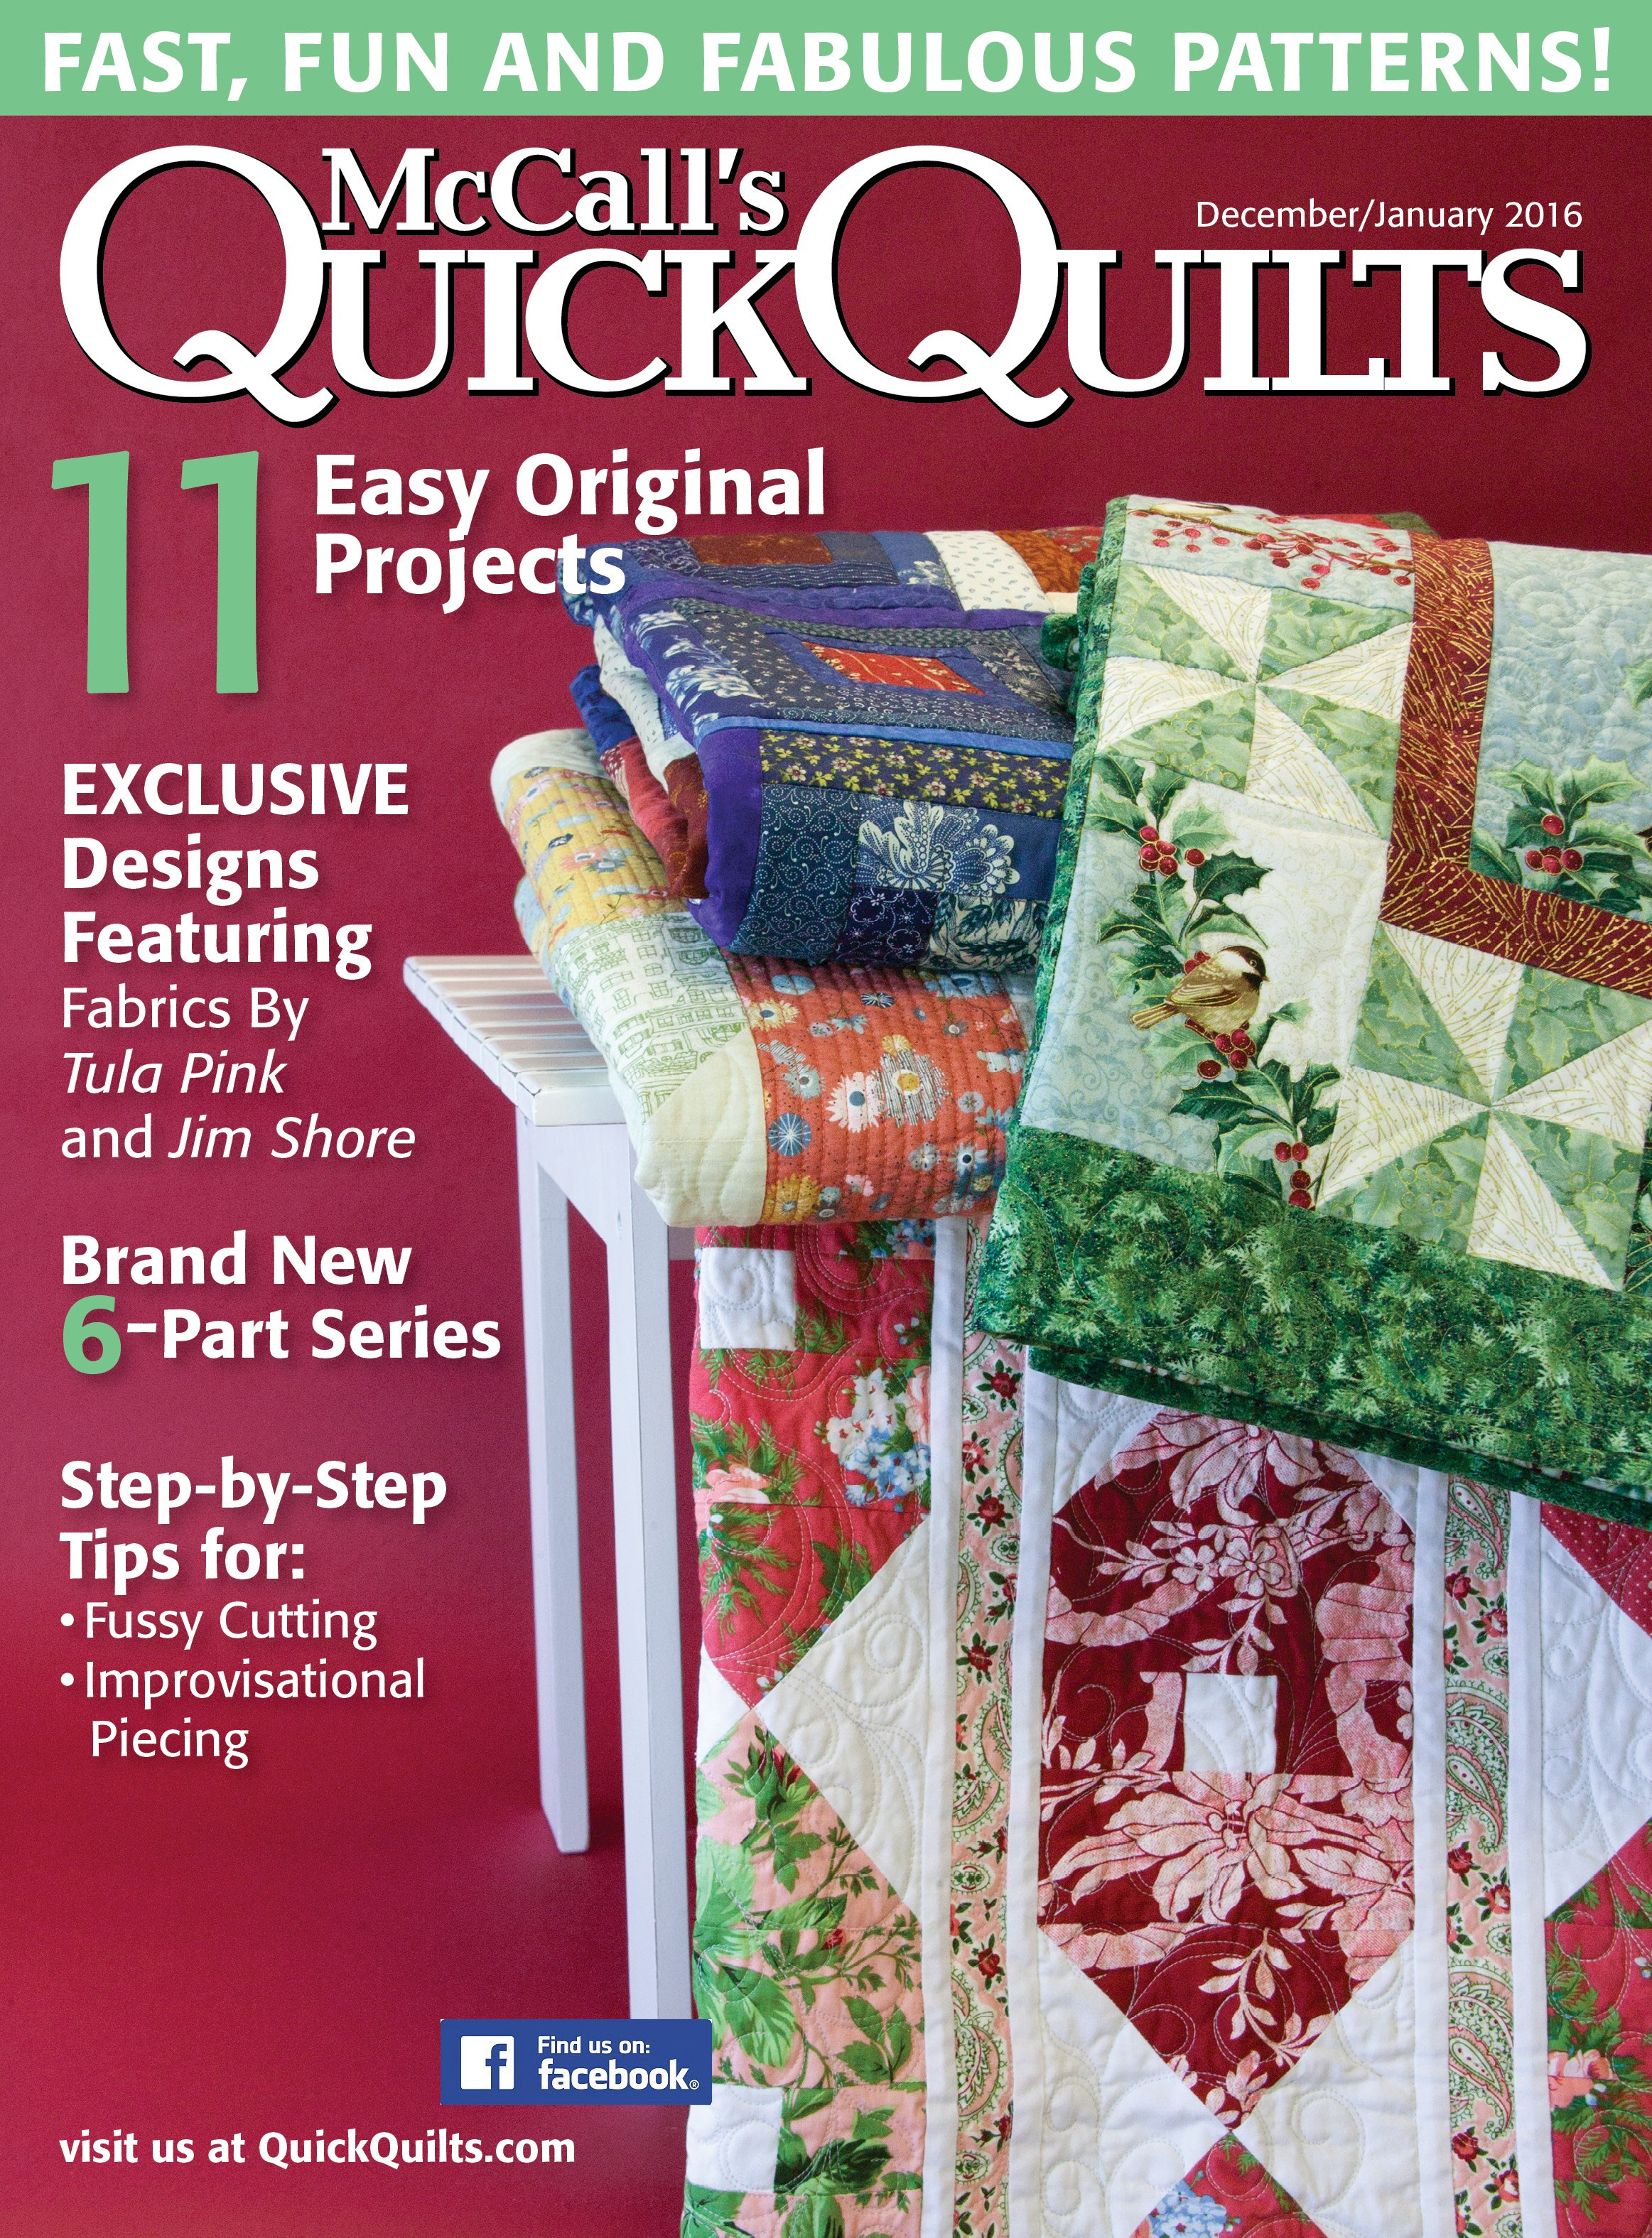 quilt the purchased and quilts s mccall star kisses of copies december be february stores immediately pattern print mccalls digital quick will feature way can woodberry in march